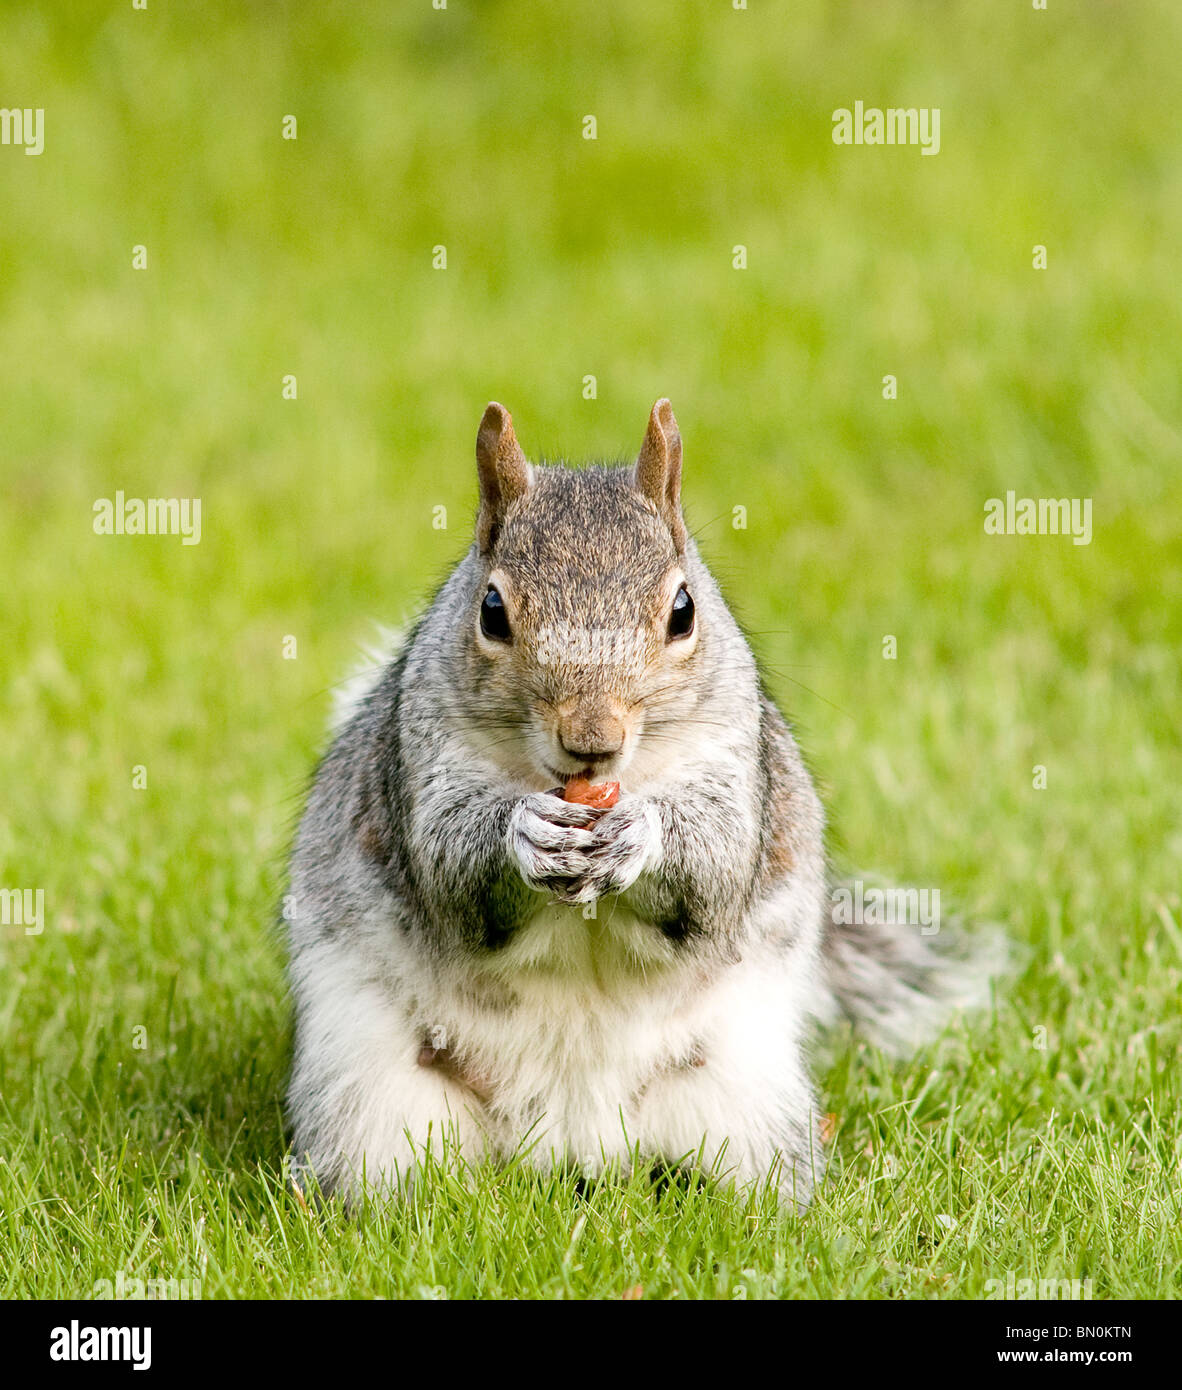 A grey squirrel eating a nut Stock Photo